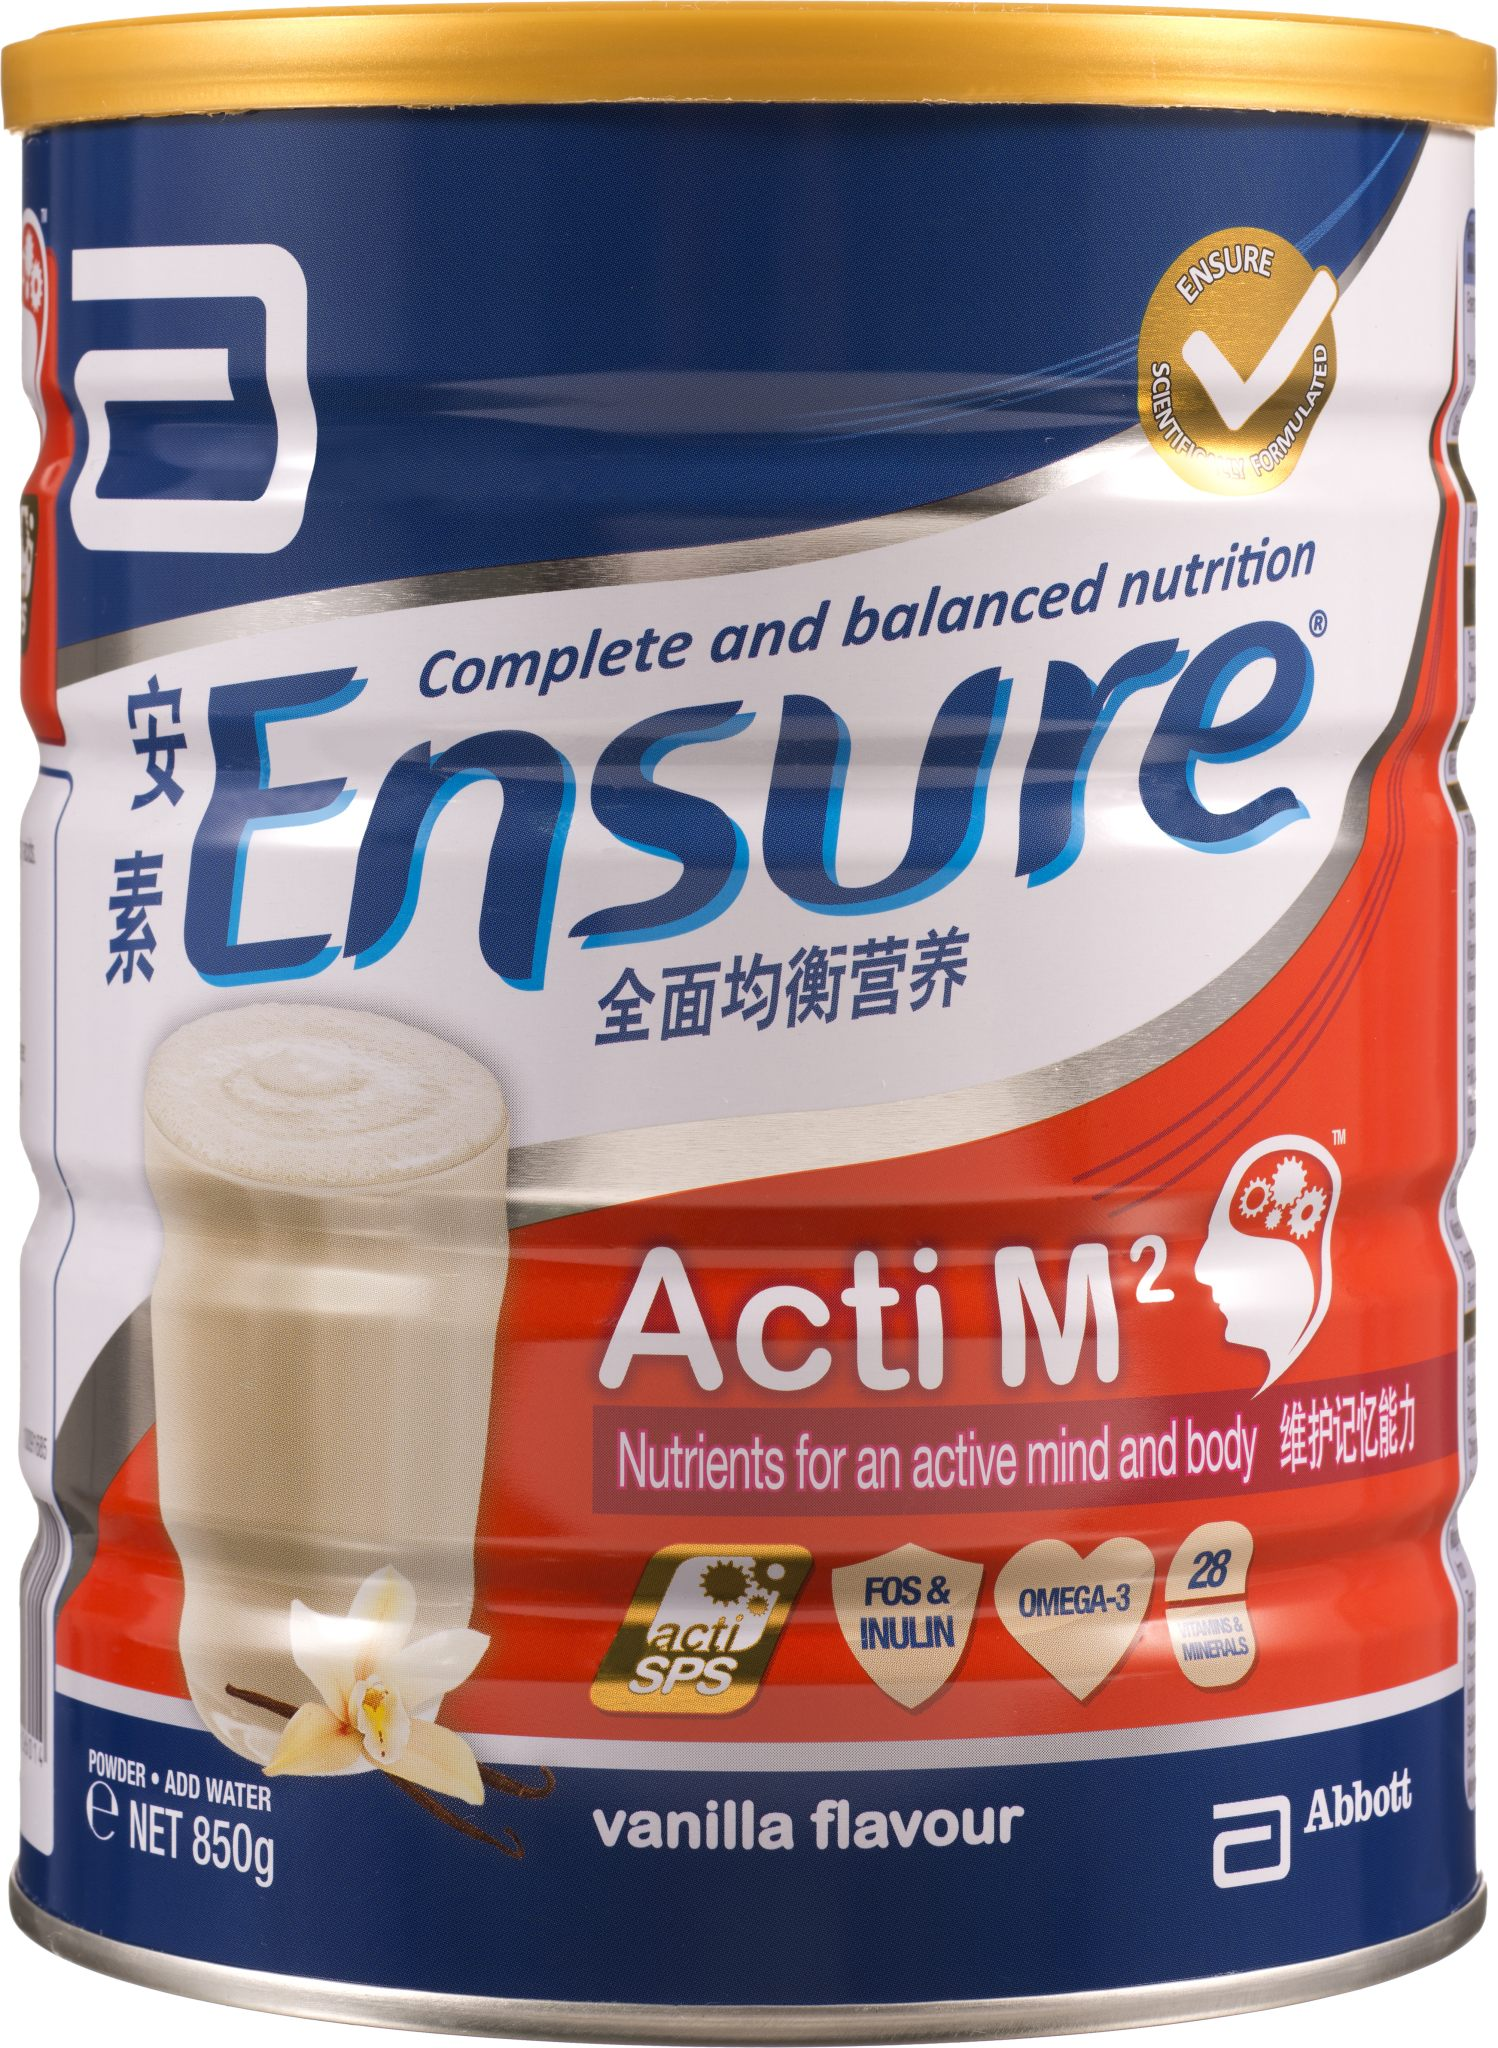 Ensure_Acti_M2_850g_20-_S506.101.jpg